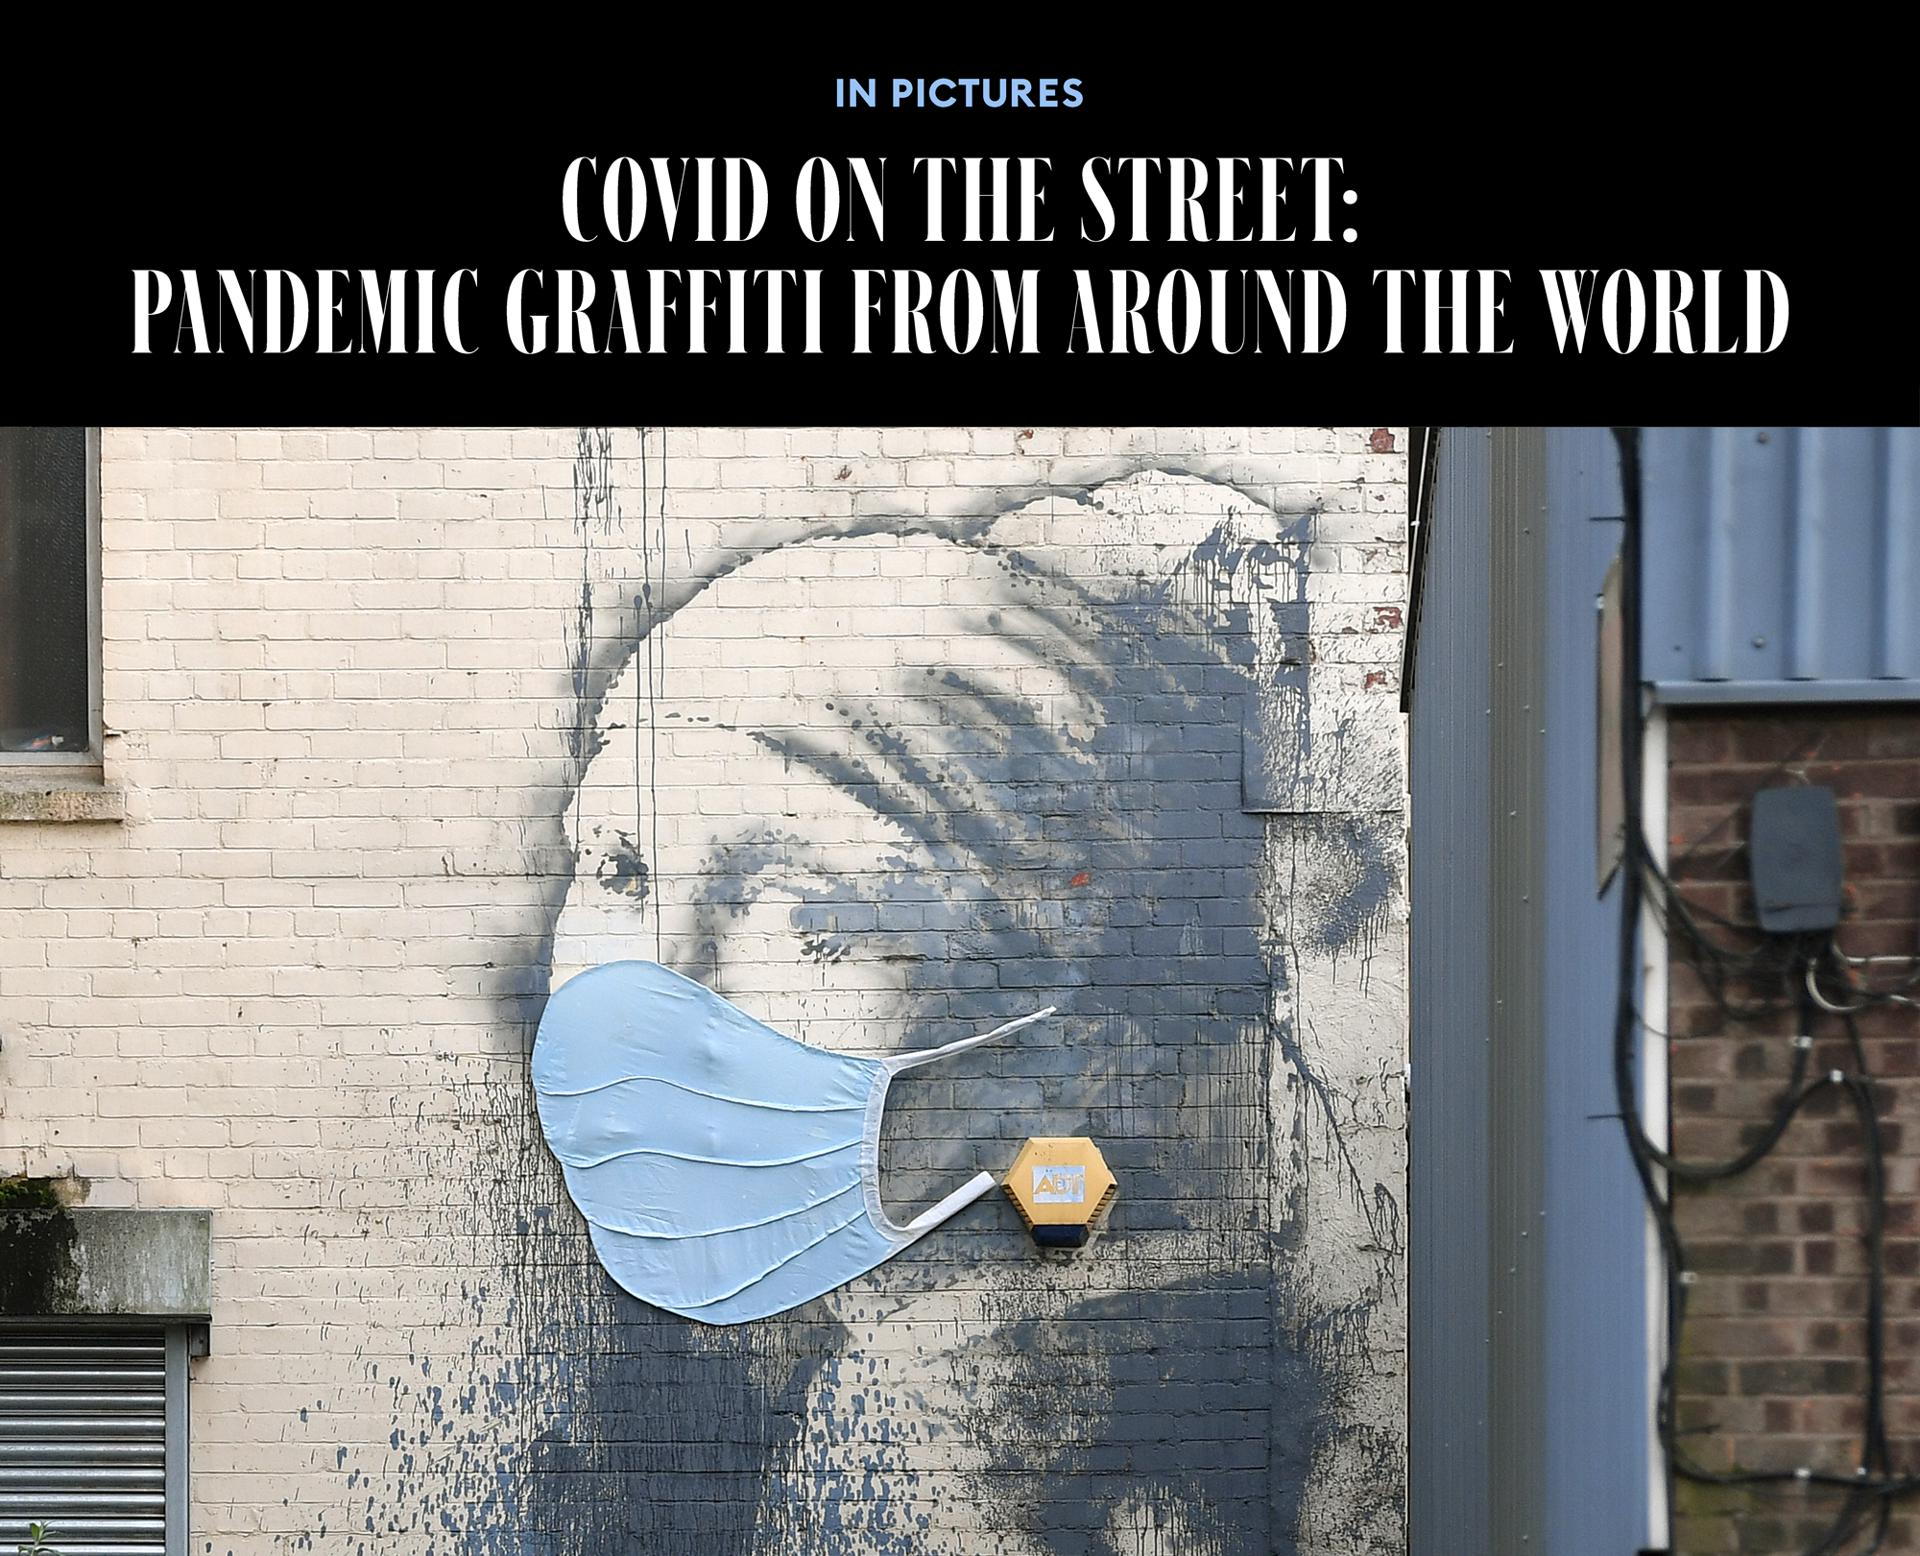 Covid On The Street: Pandemic Graffiti From Around The World